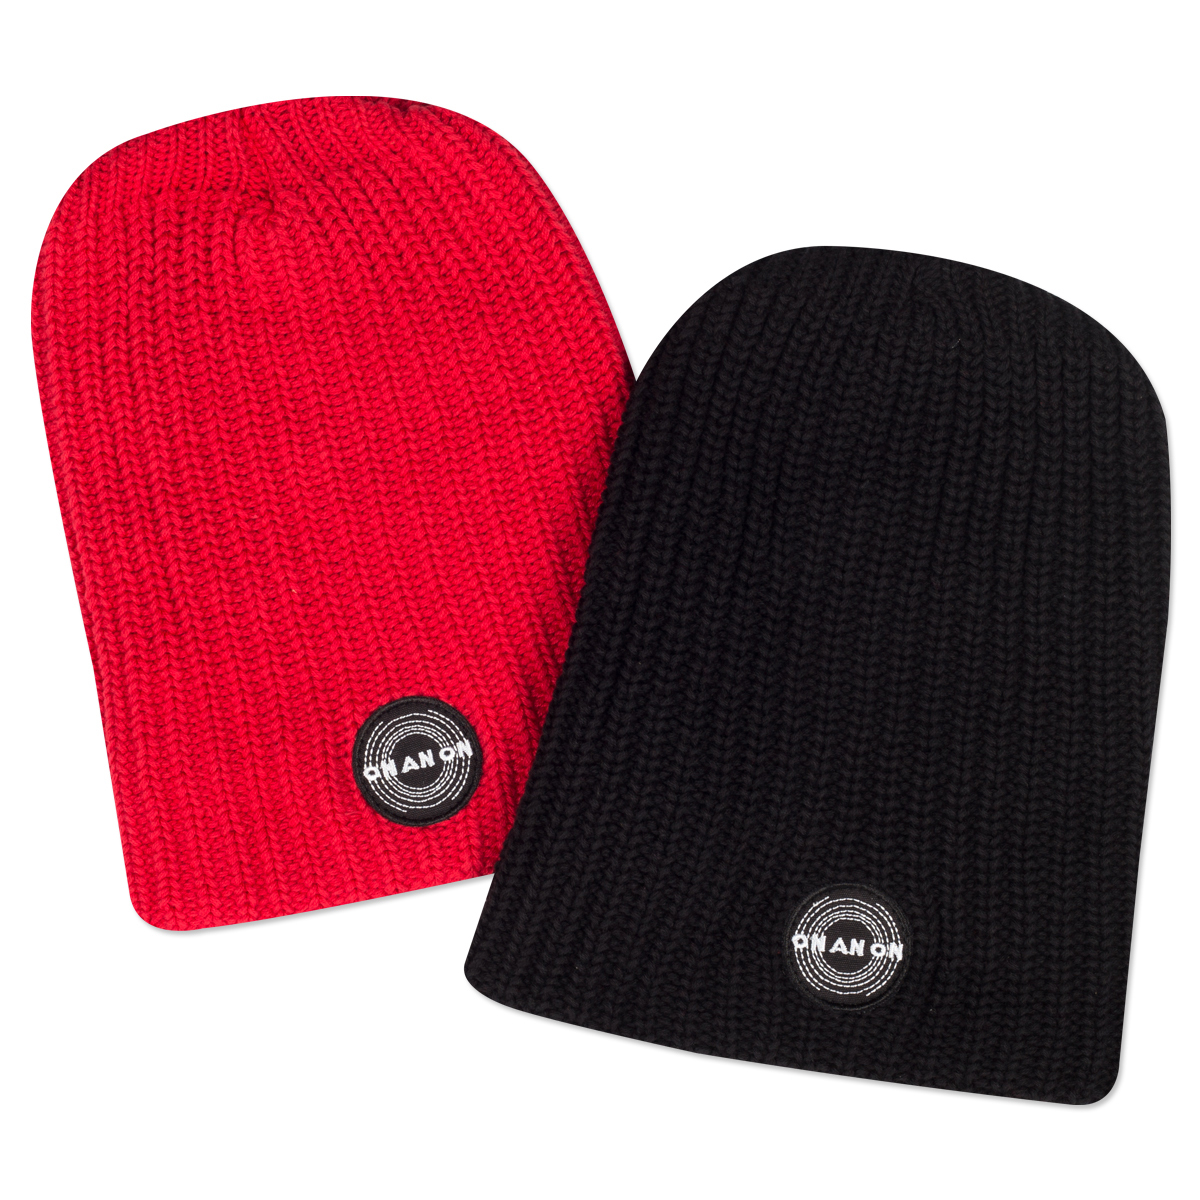 ON AN ON ATWHTS Knit Beanie